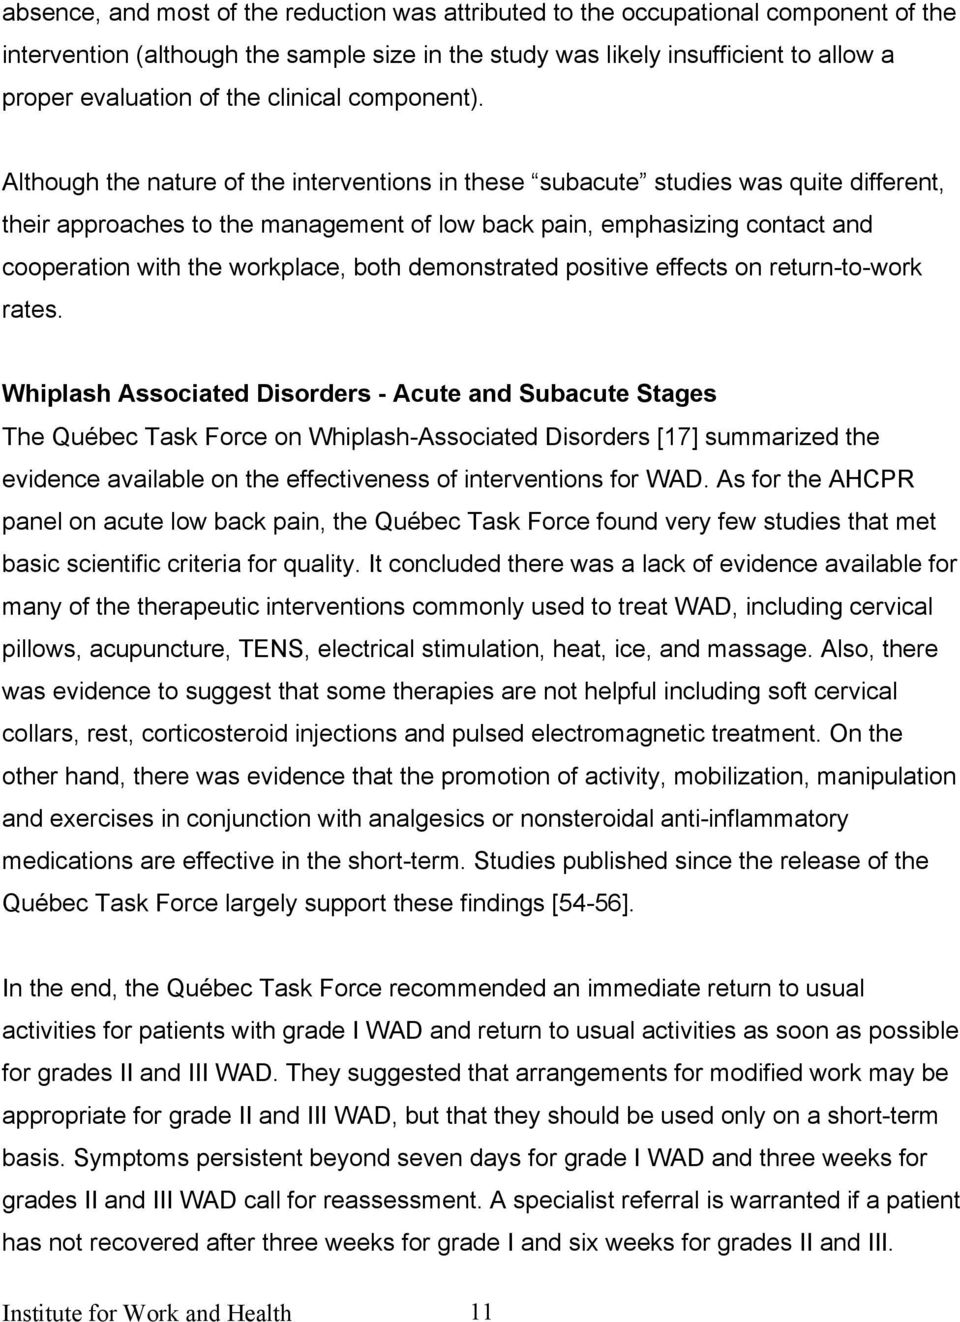 Although the nature of the interventions in these subacute studies was quite different, their approaches to the management of low back pain, emphasizing contact and cooperation with the workplace,